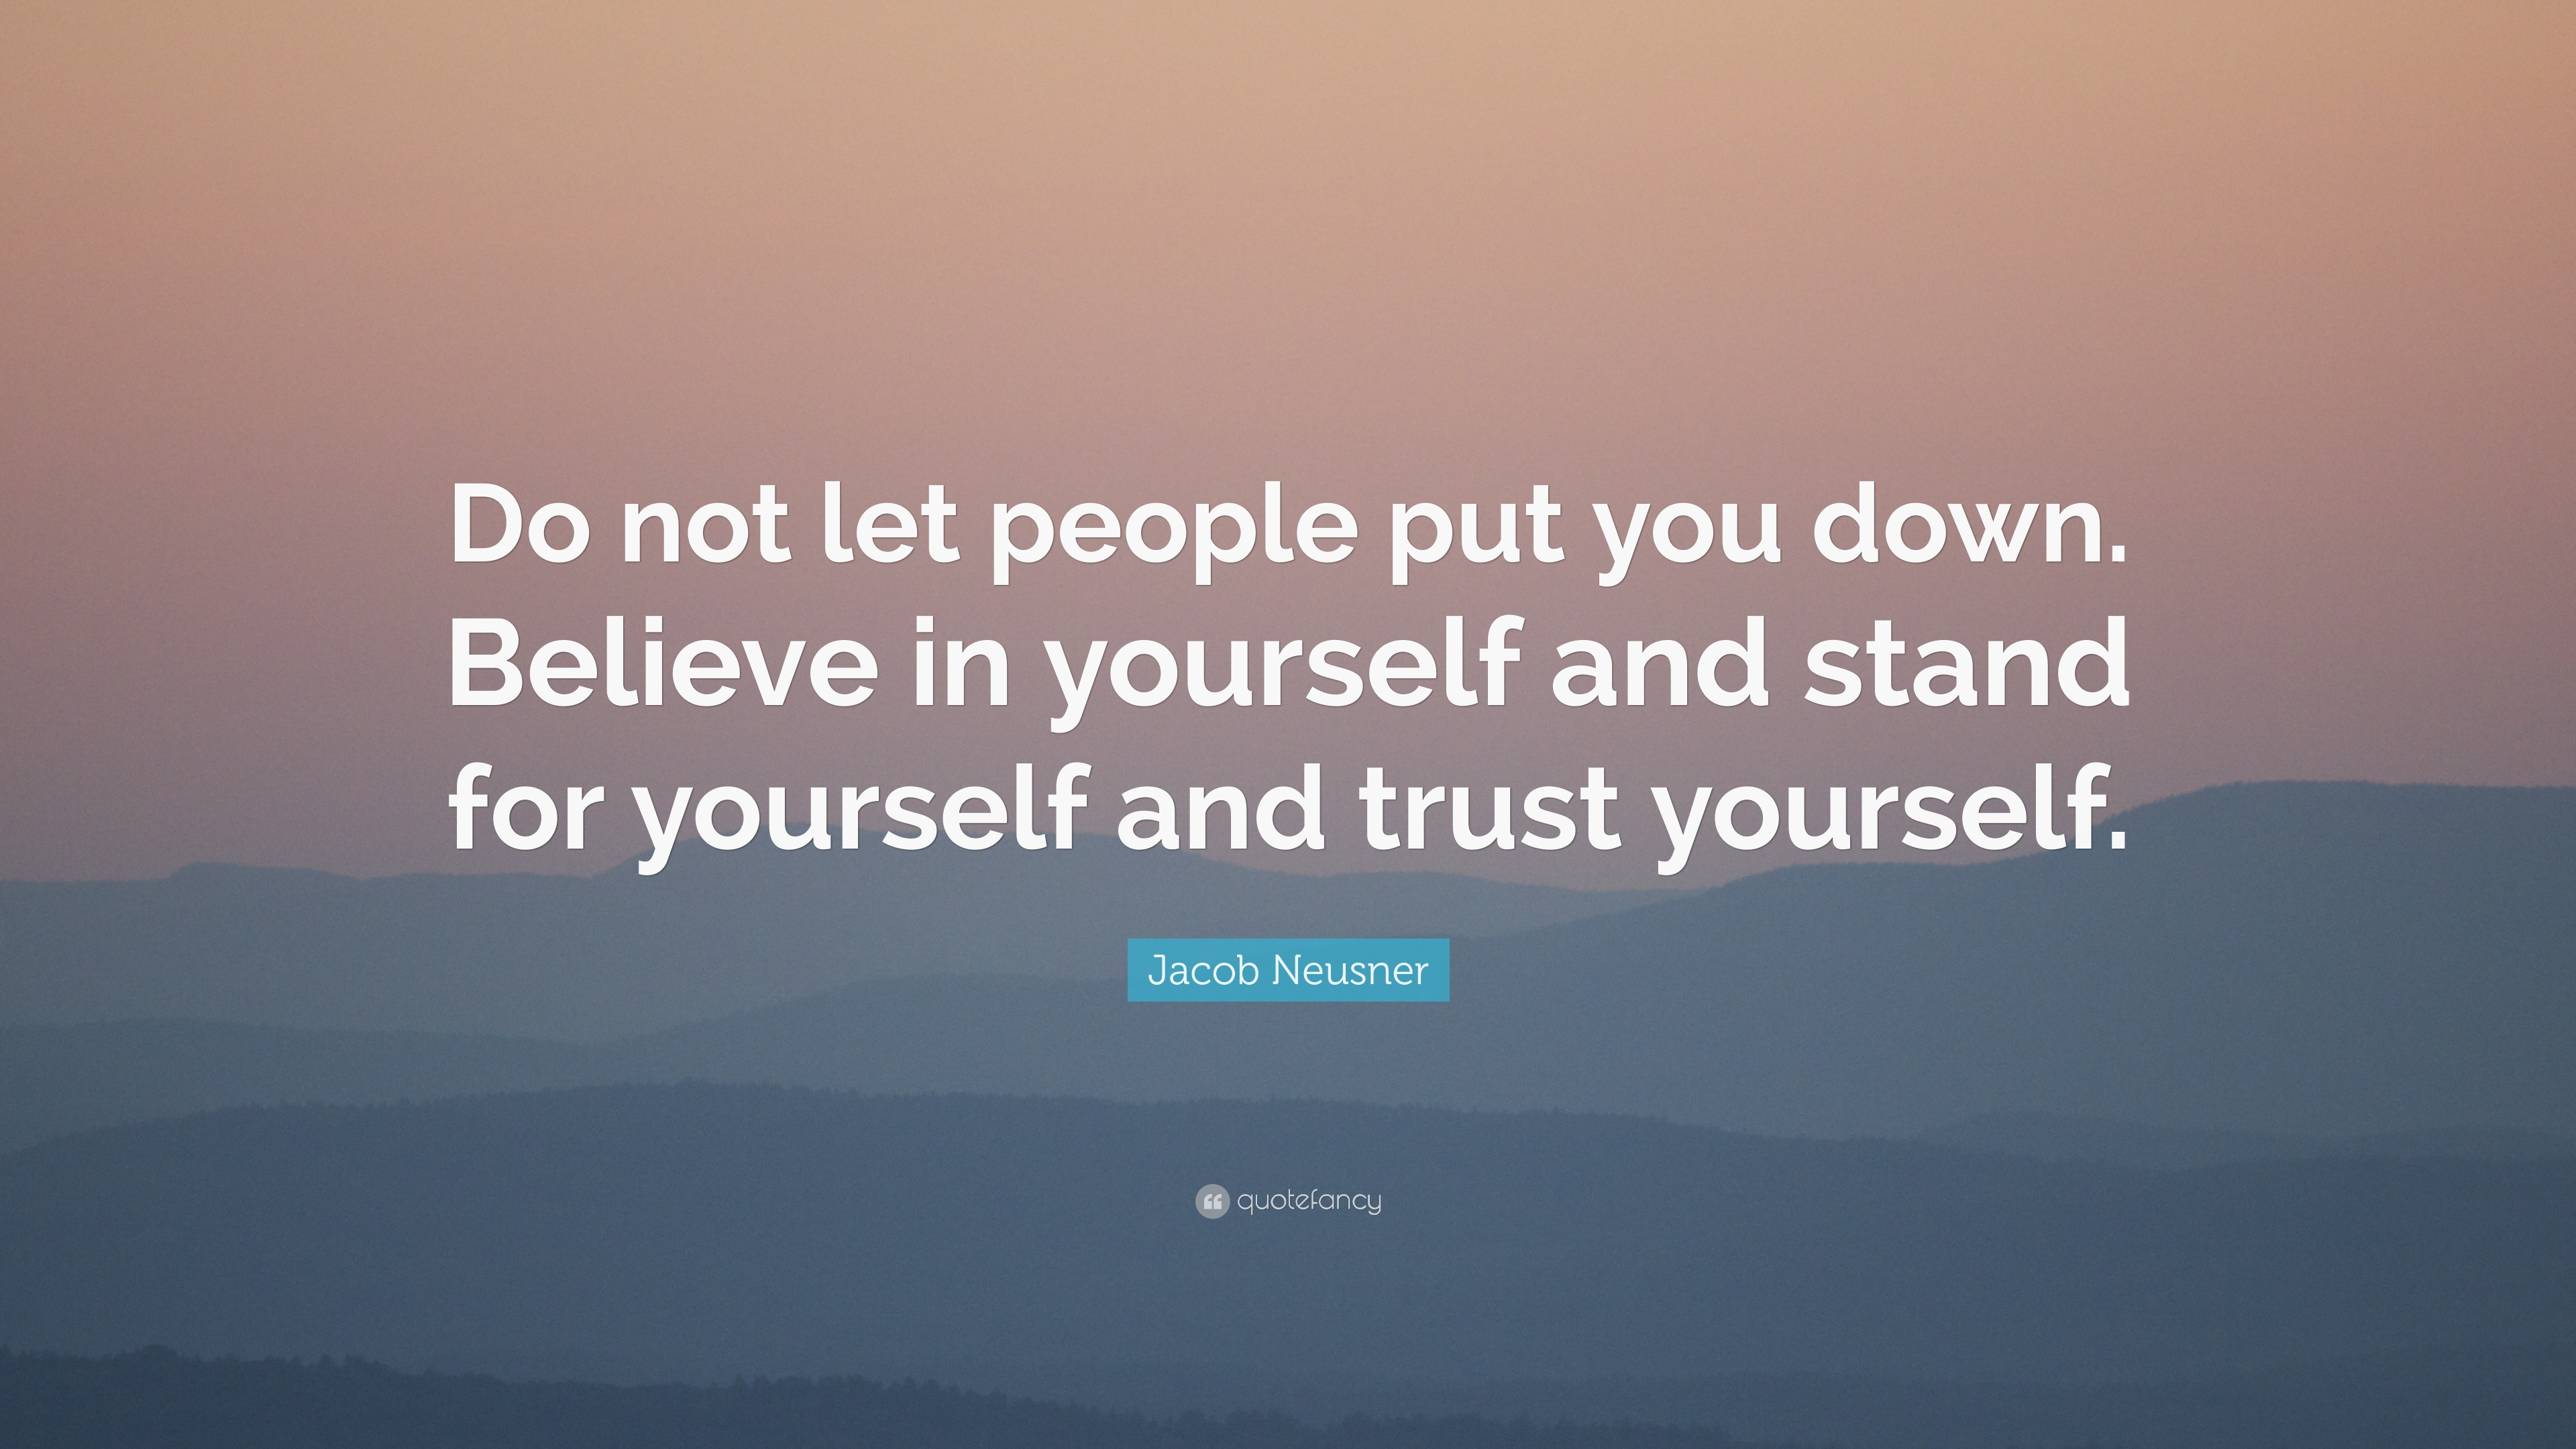 jacob neusner quote do not let people put you down believe in